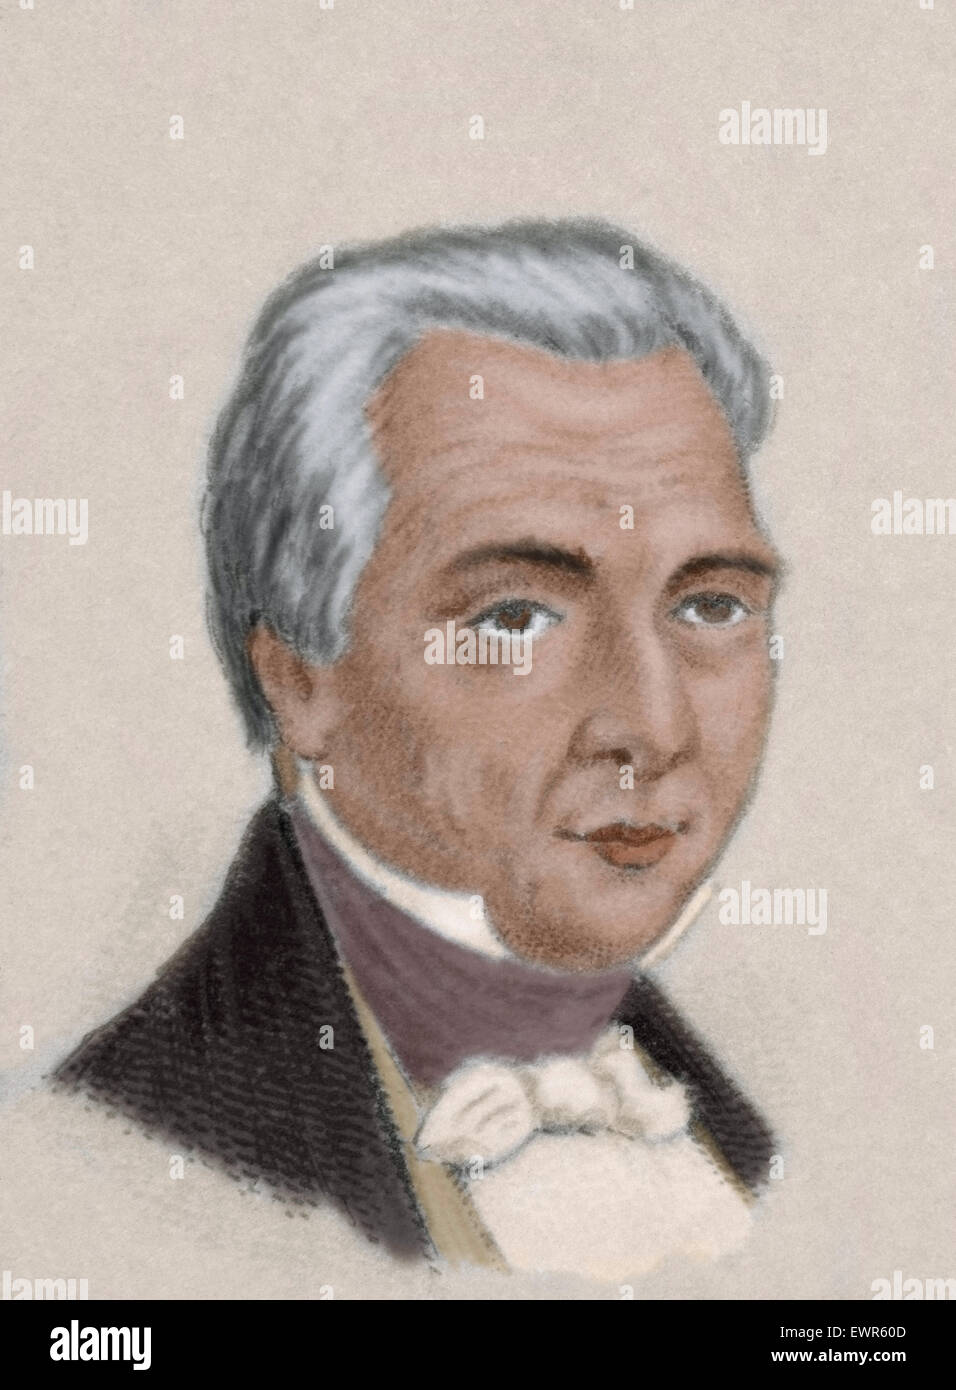 <b>Jose Mariano</b> Michelena (1772-1852). Mexican military officer and politician. - jose-mariano-michelena-1772-1852-mexican-military-officer-and-politician-EWR60D